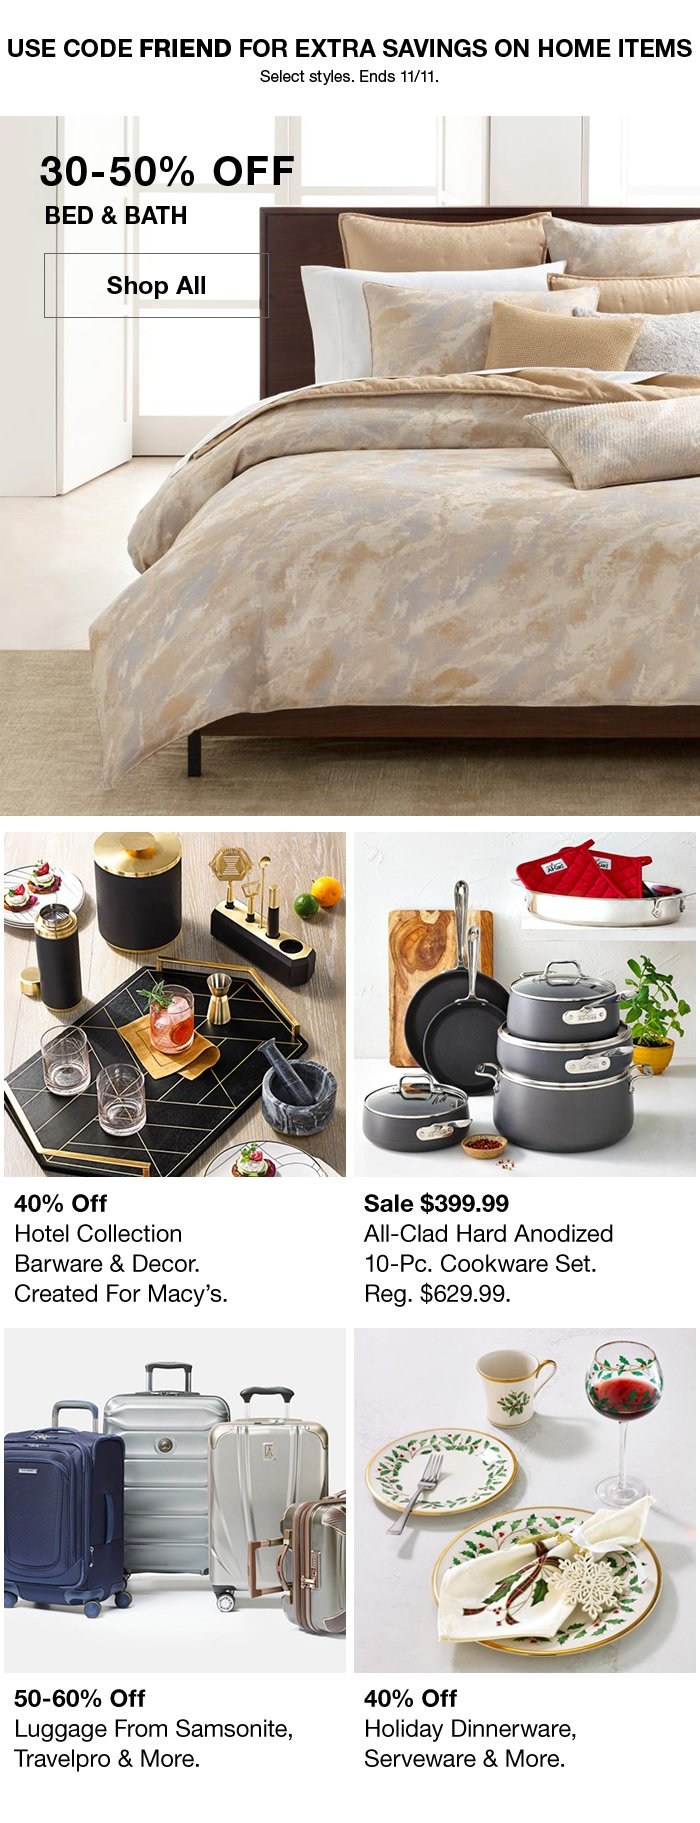 Use Code FRIEND for Extra Savings, 30-50 percent off Bed and Bath Shop All, 40 percent off Hotel Collection, Sale $399.99 All-Clad Hard Anodized 10 Piece Cookware Set, 50-60 percent off Luggage from Samsonite, Travelpro and More, 40 percent off Holiday Dinnerware, Serveware and More